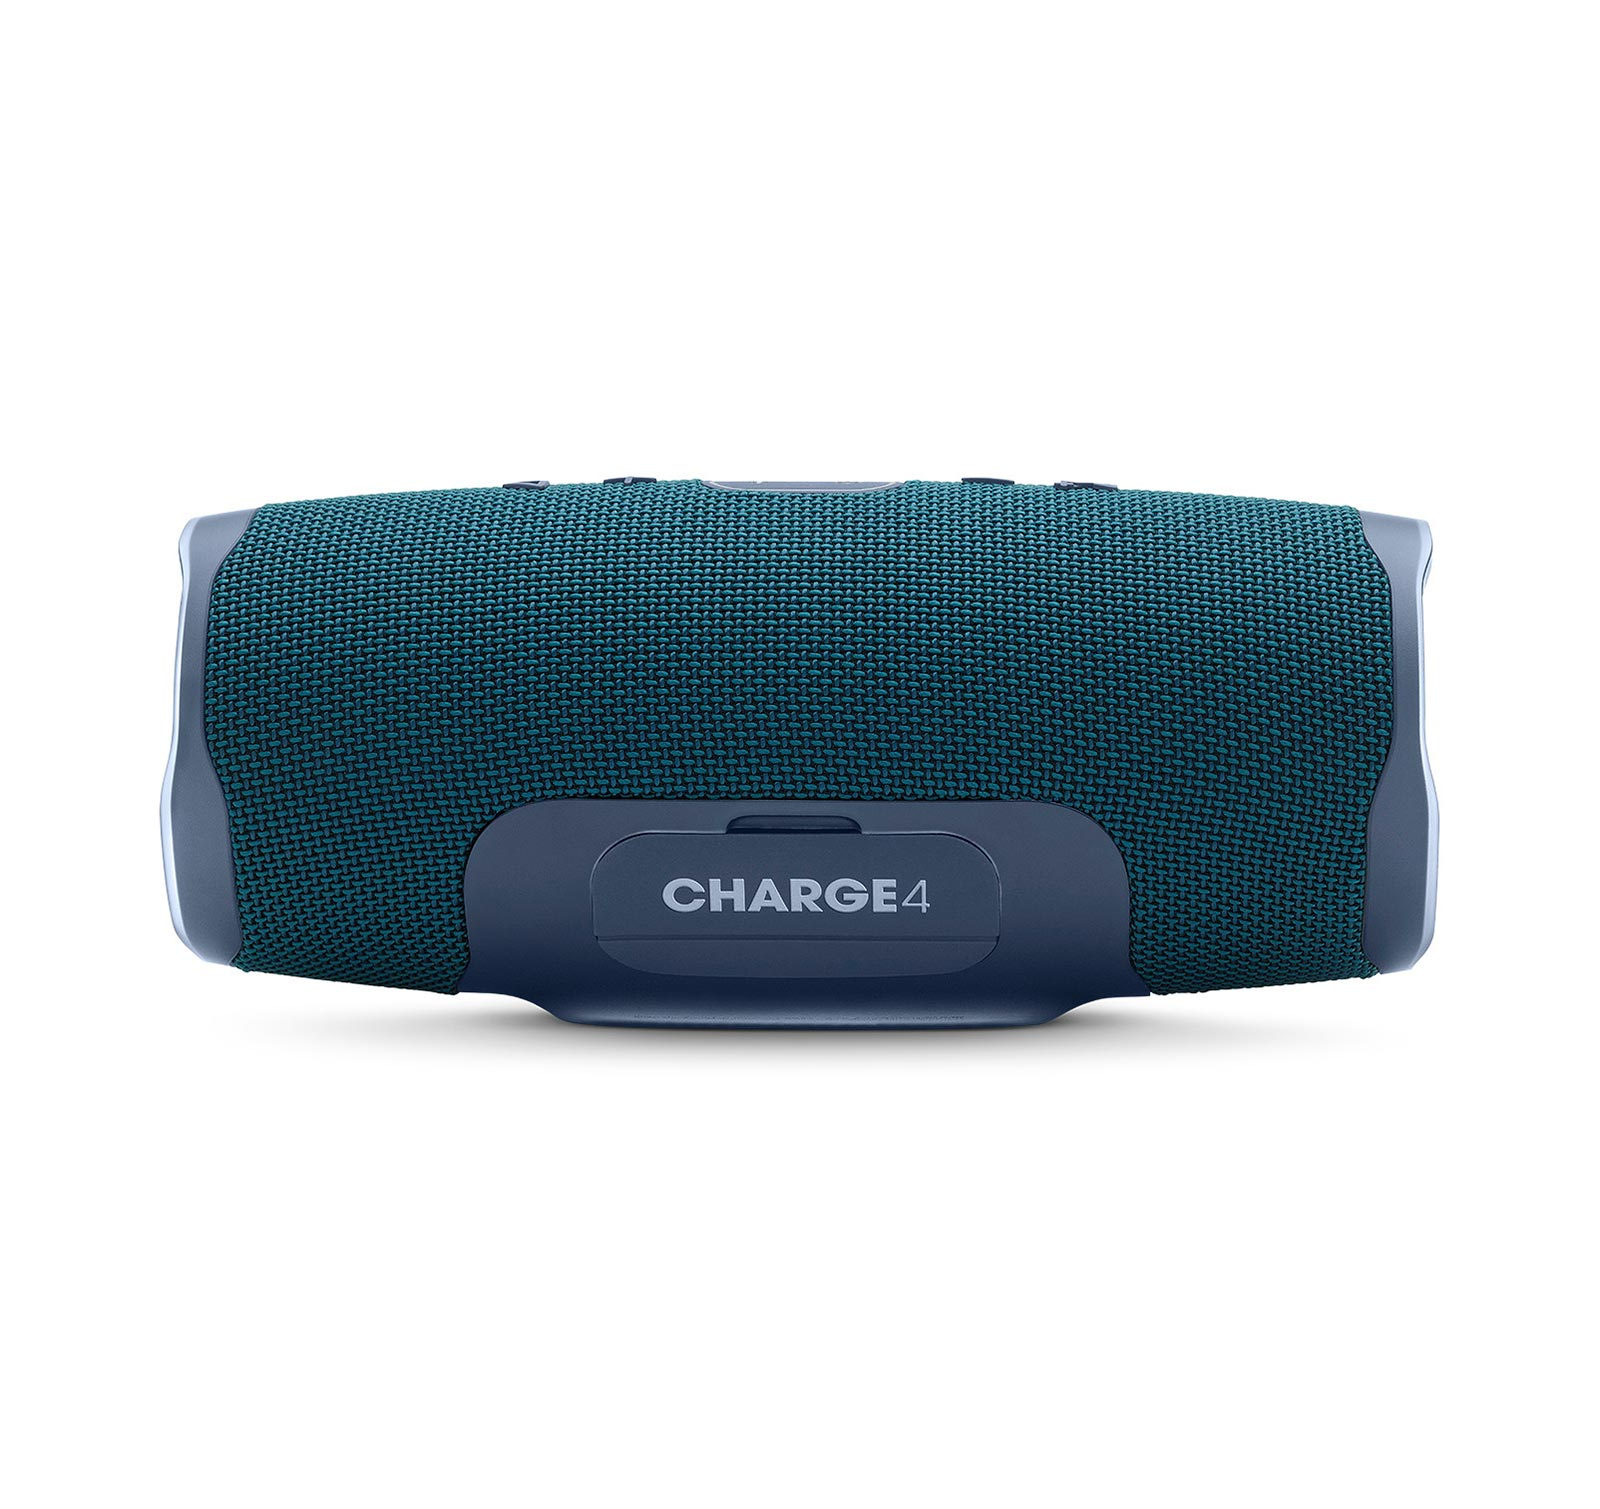 JBL-Charge-4-Portable-Bluetooth-Speaker thumbnail 9